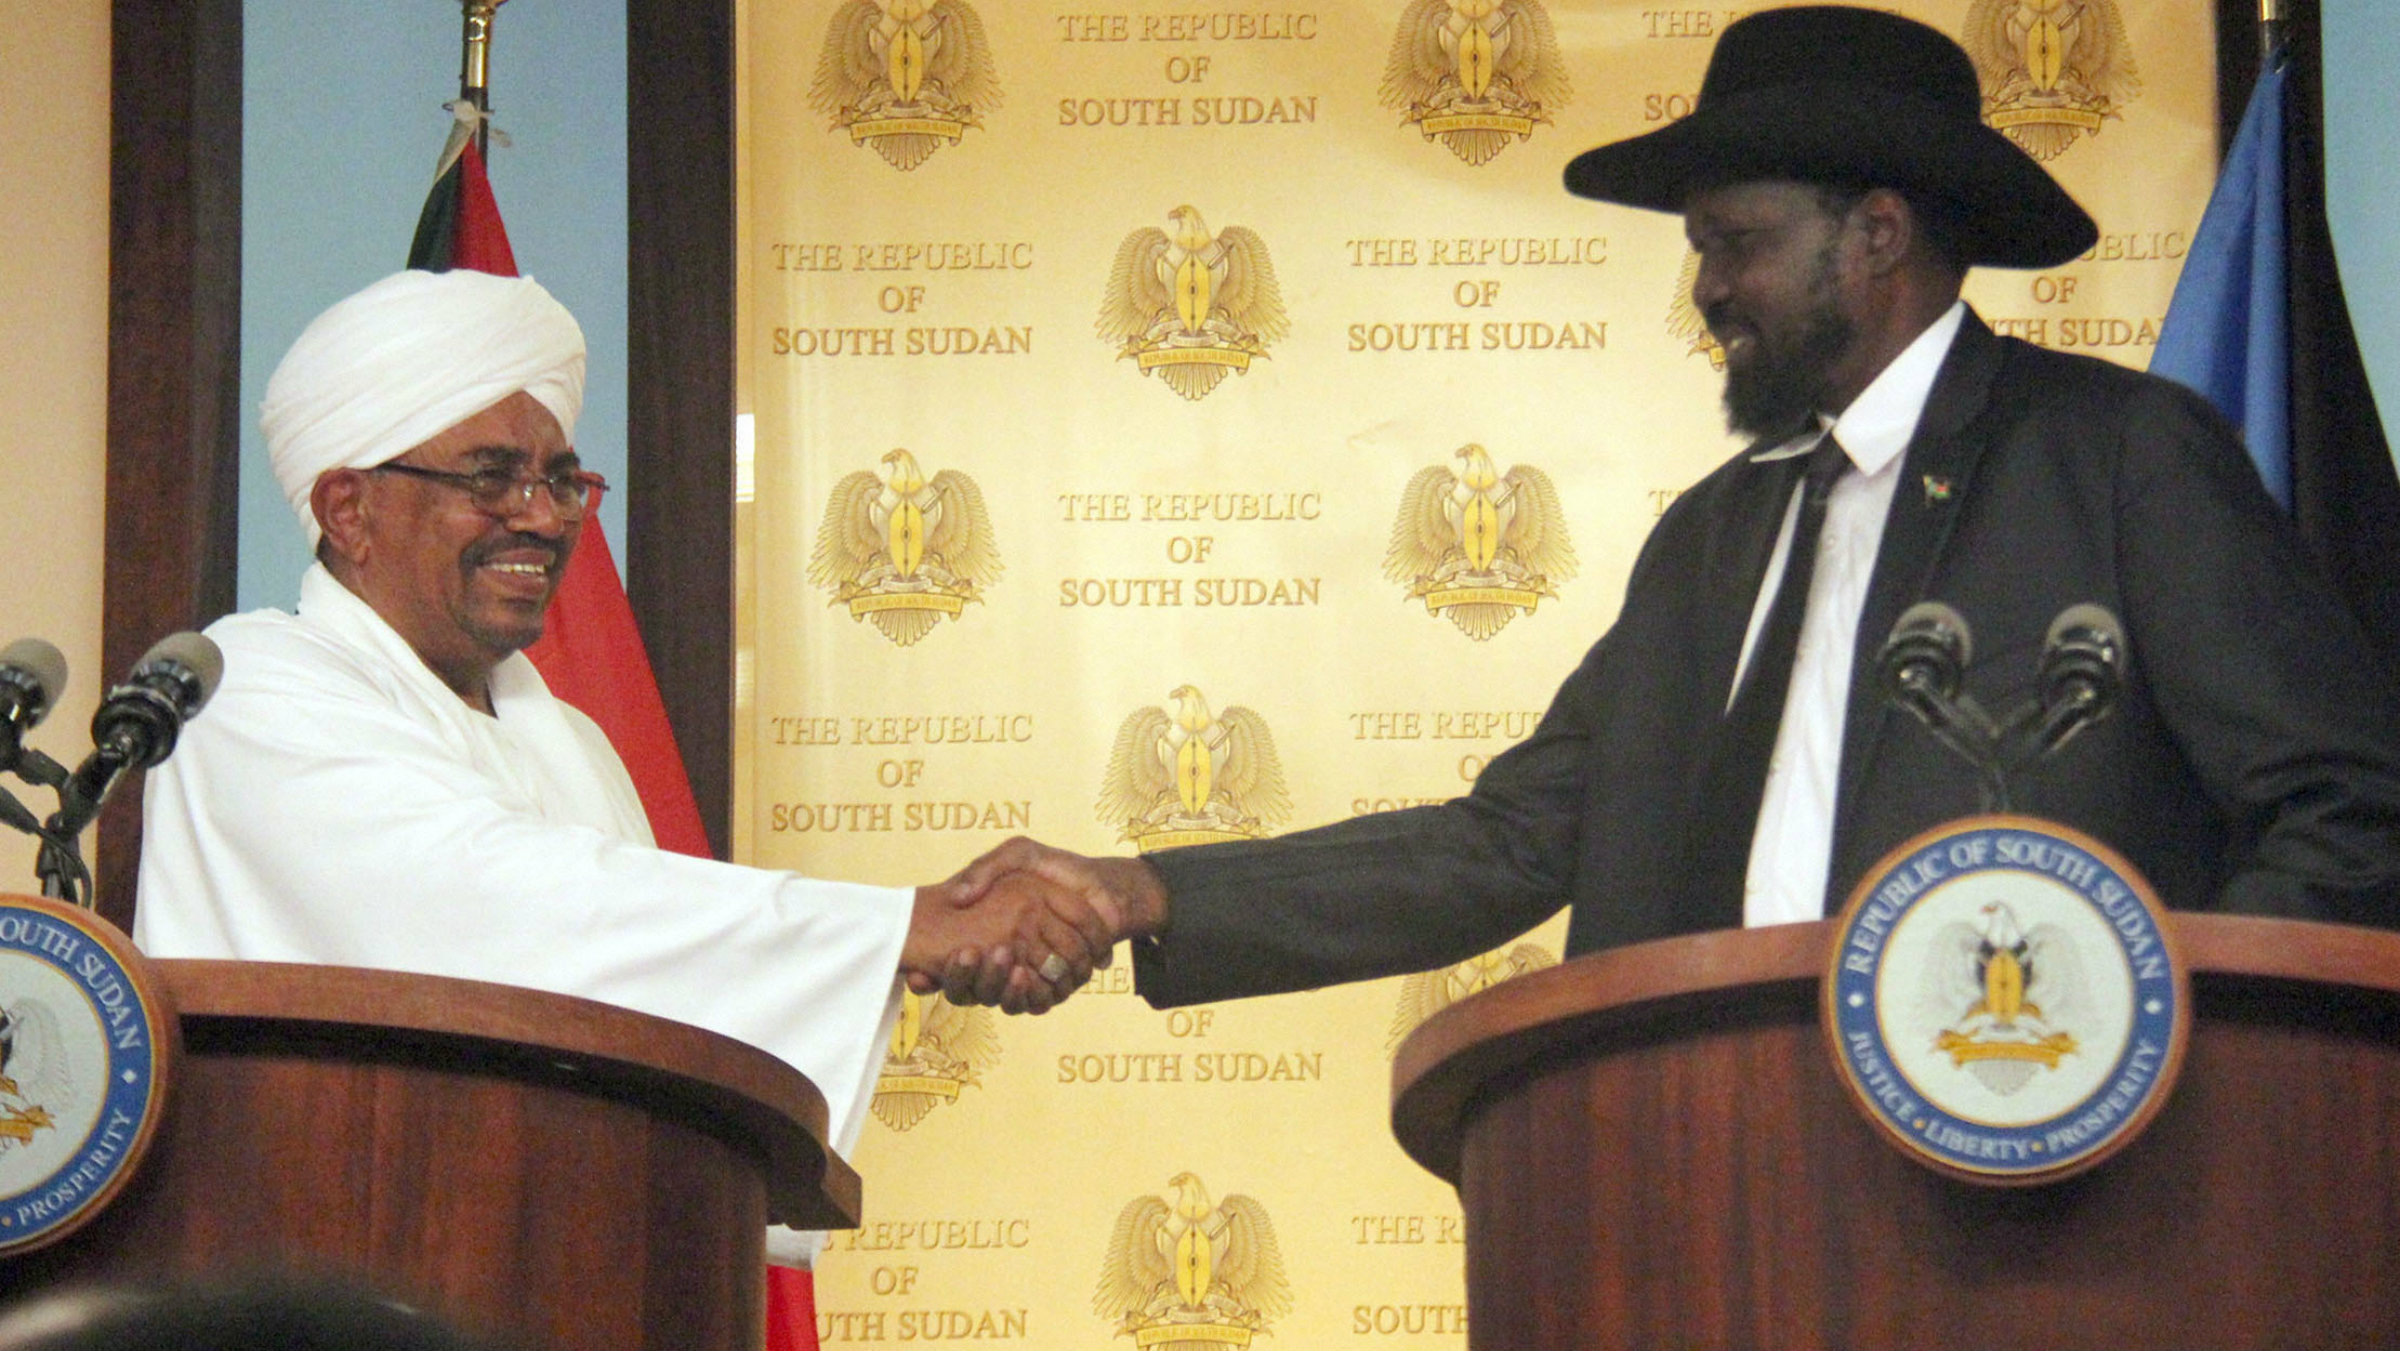 Sudan's Bashir, left, with South Sudan's Kiir, on a friendly day in April.